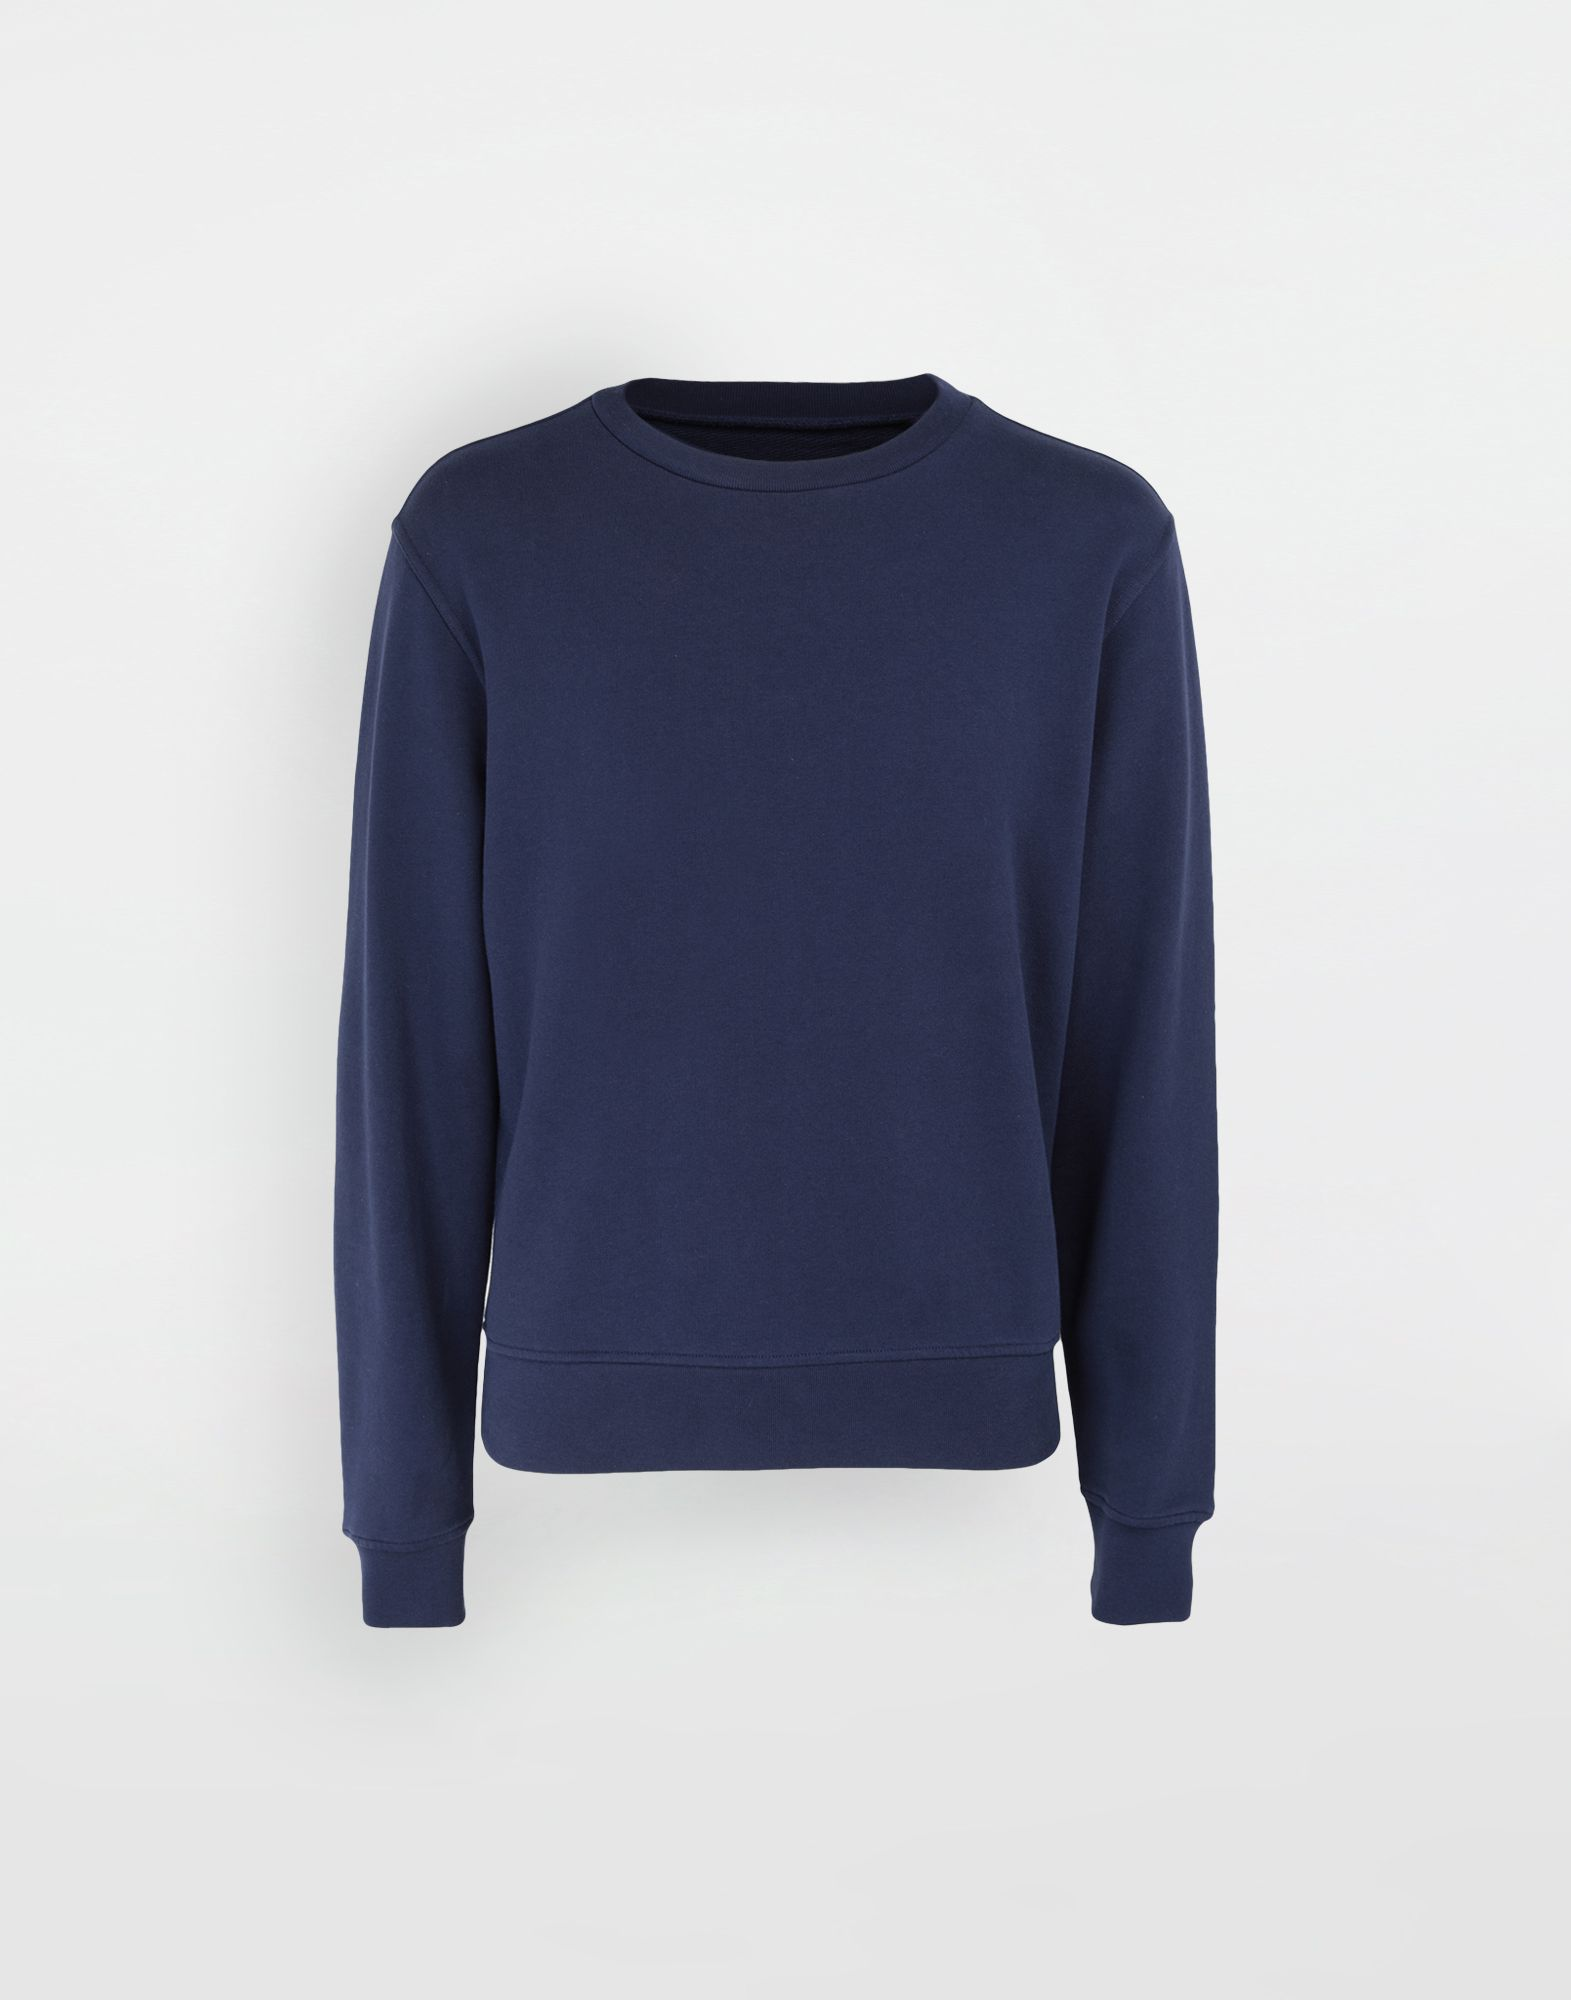 MAISON MARGIELA Décortiqué elbow patch sweatshirt Sweatshirt Man f